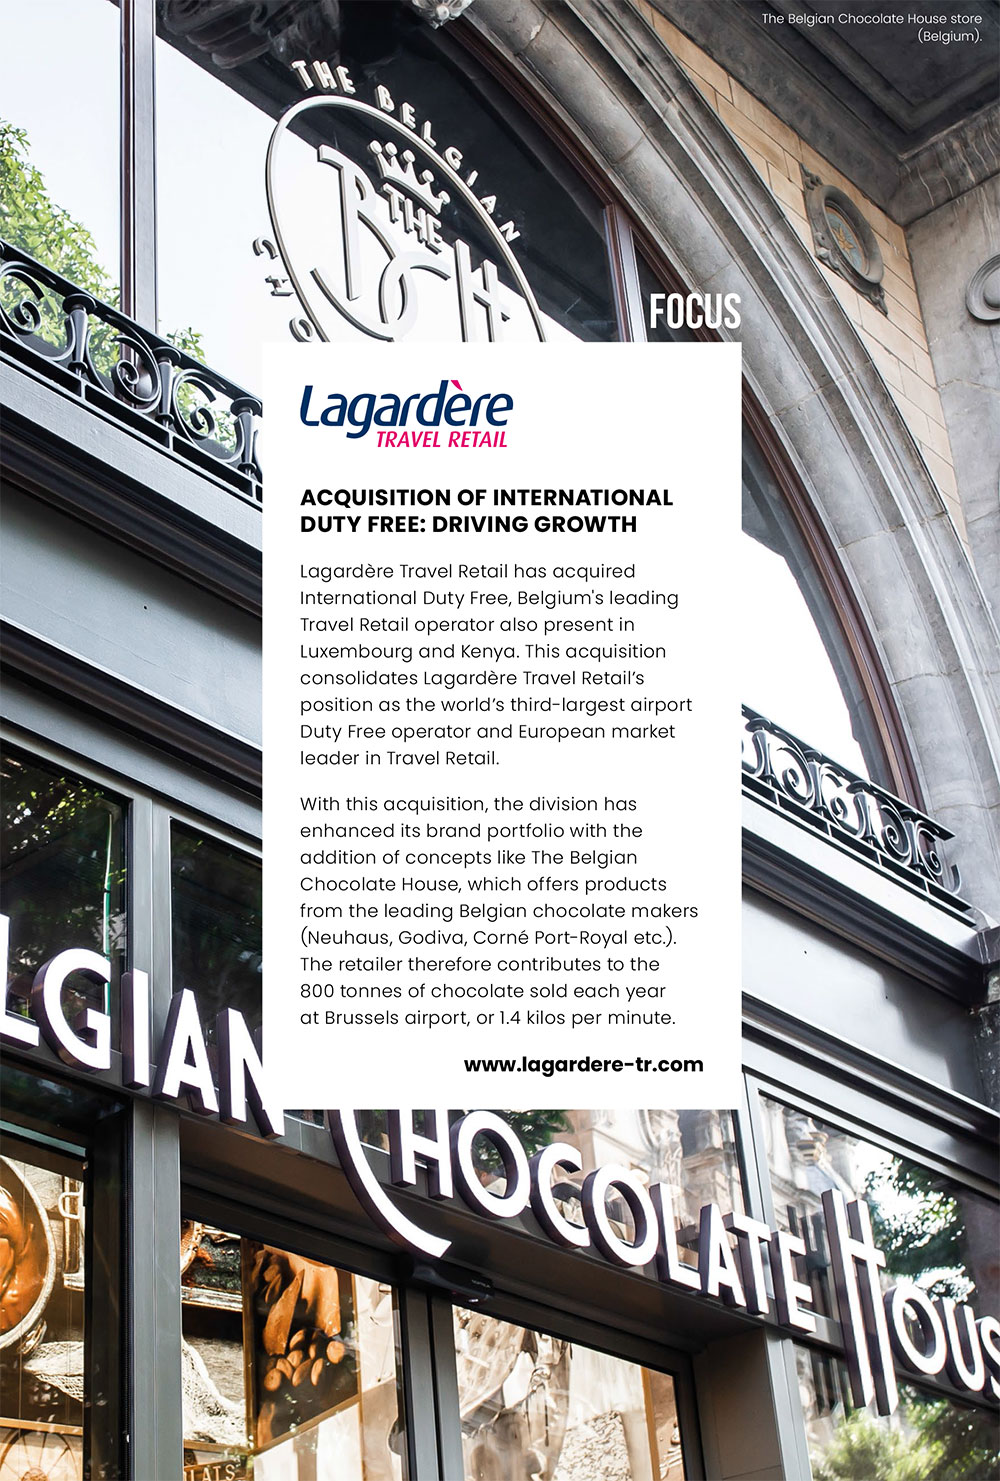 Lagardère Travel Retail: The Belgian Chocolate House store